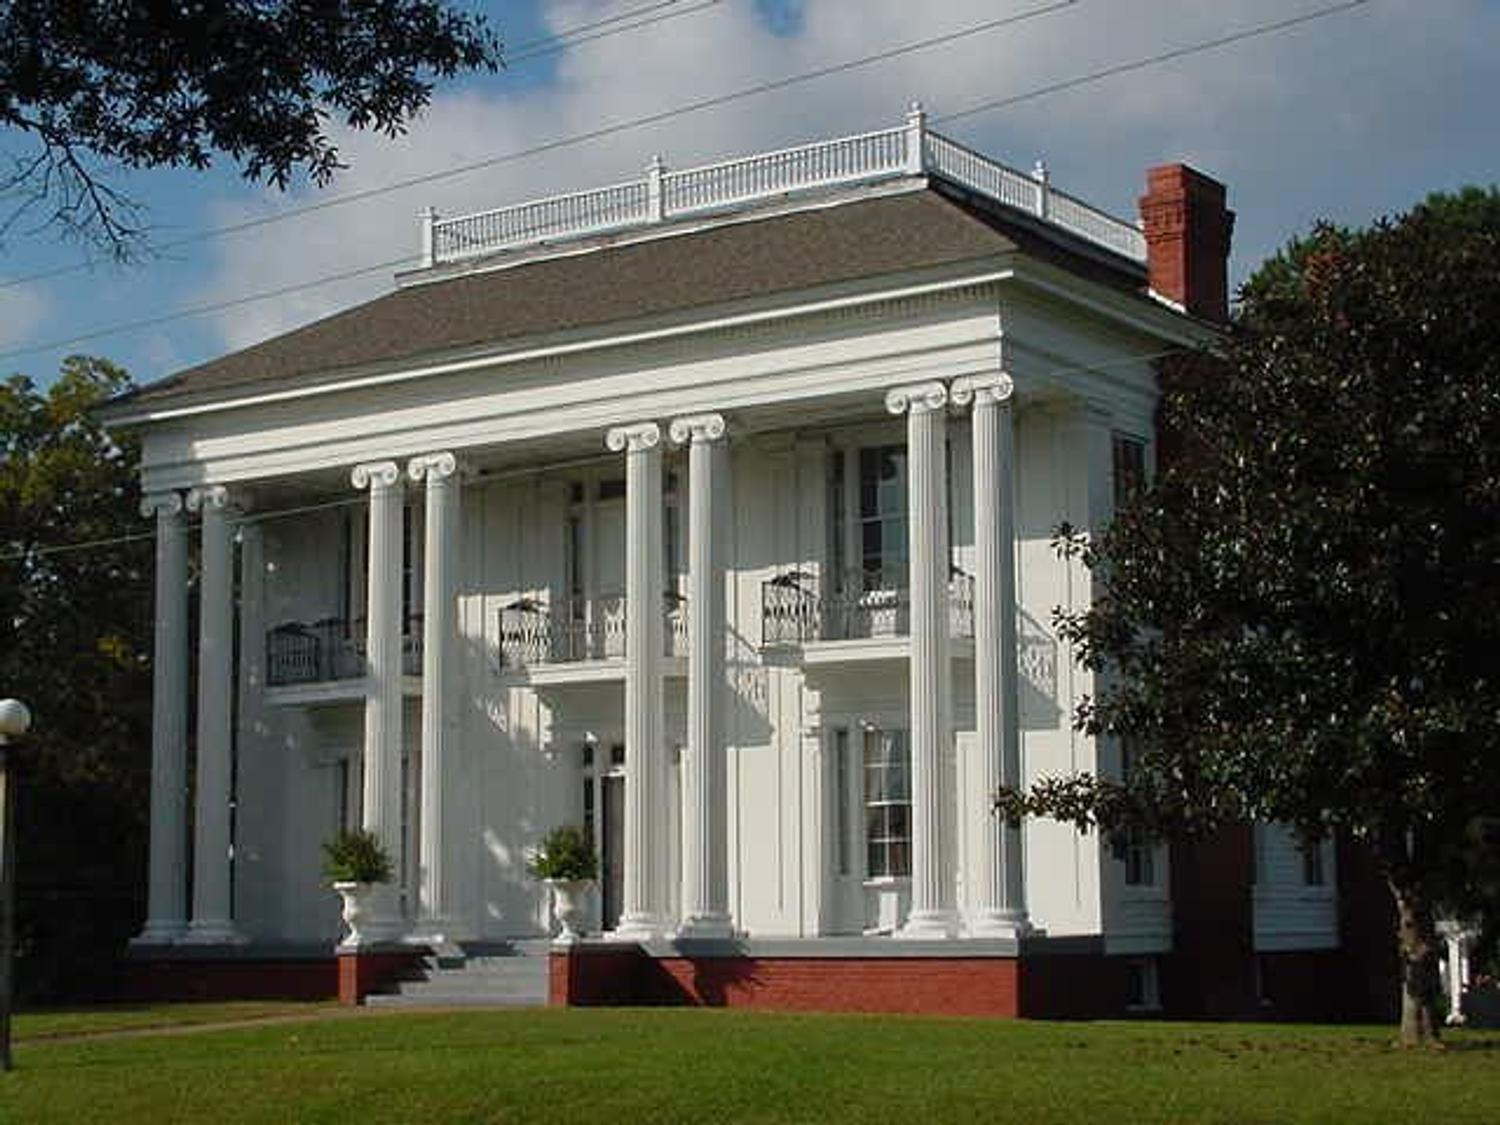 The antebellum Greek Revival home in Aberdeen, Mississippi